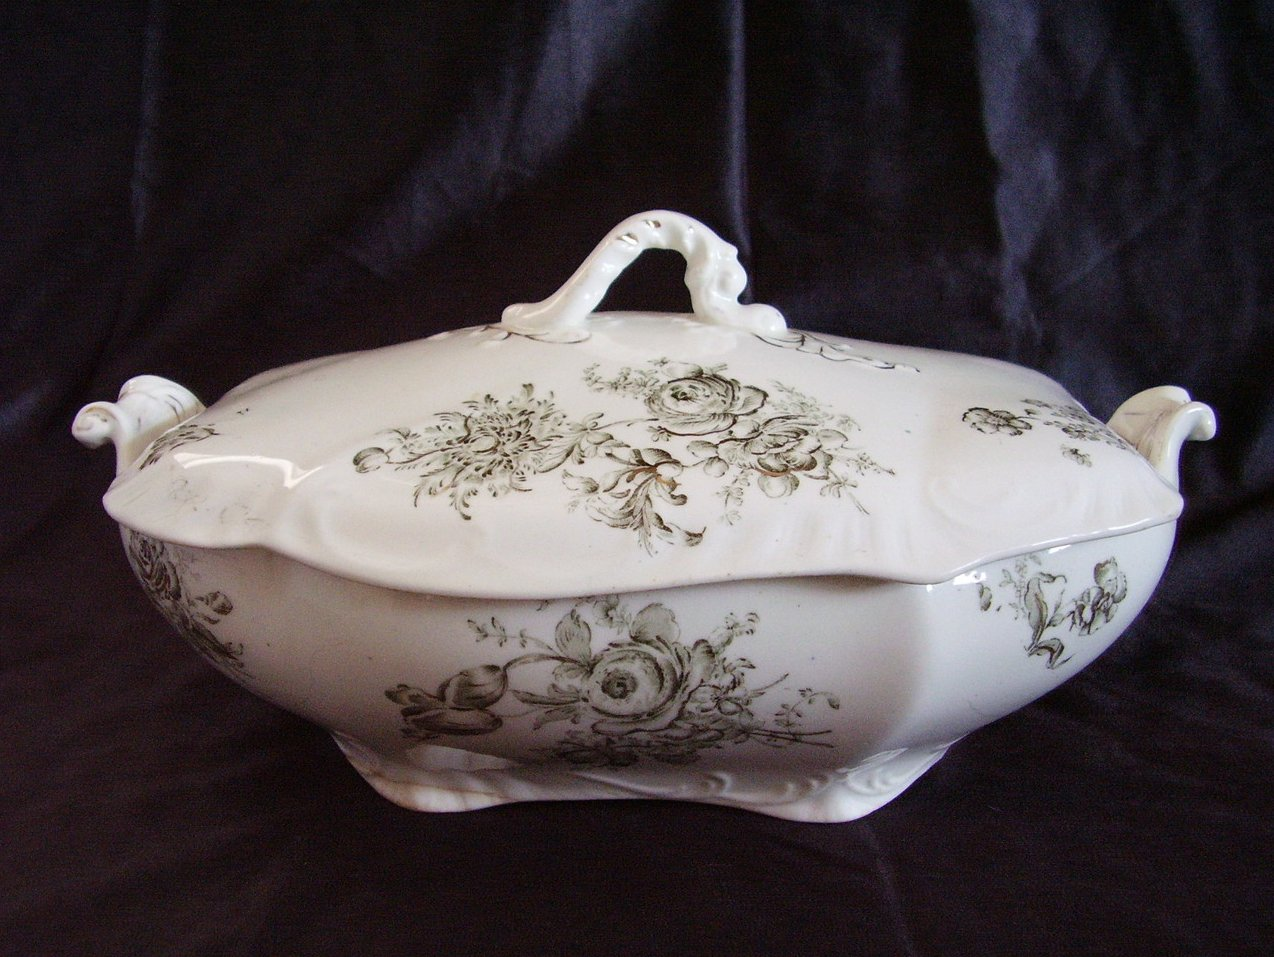 Dresdon SemiPorcelain Transferware Johnson Bros Covered Dish